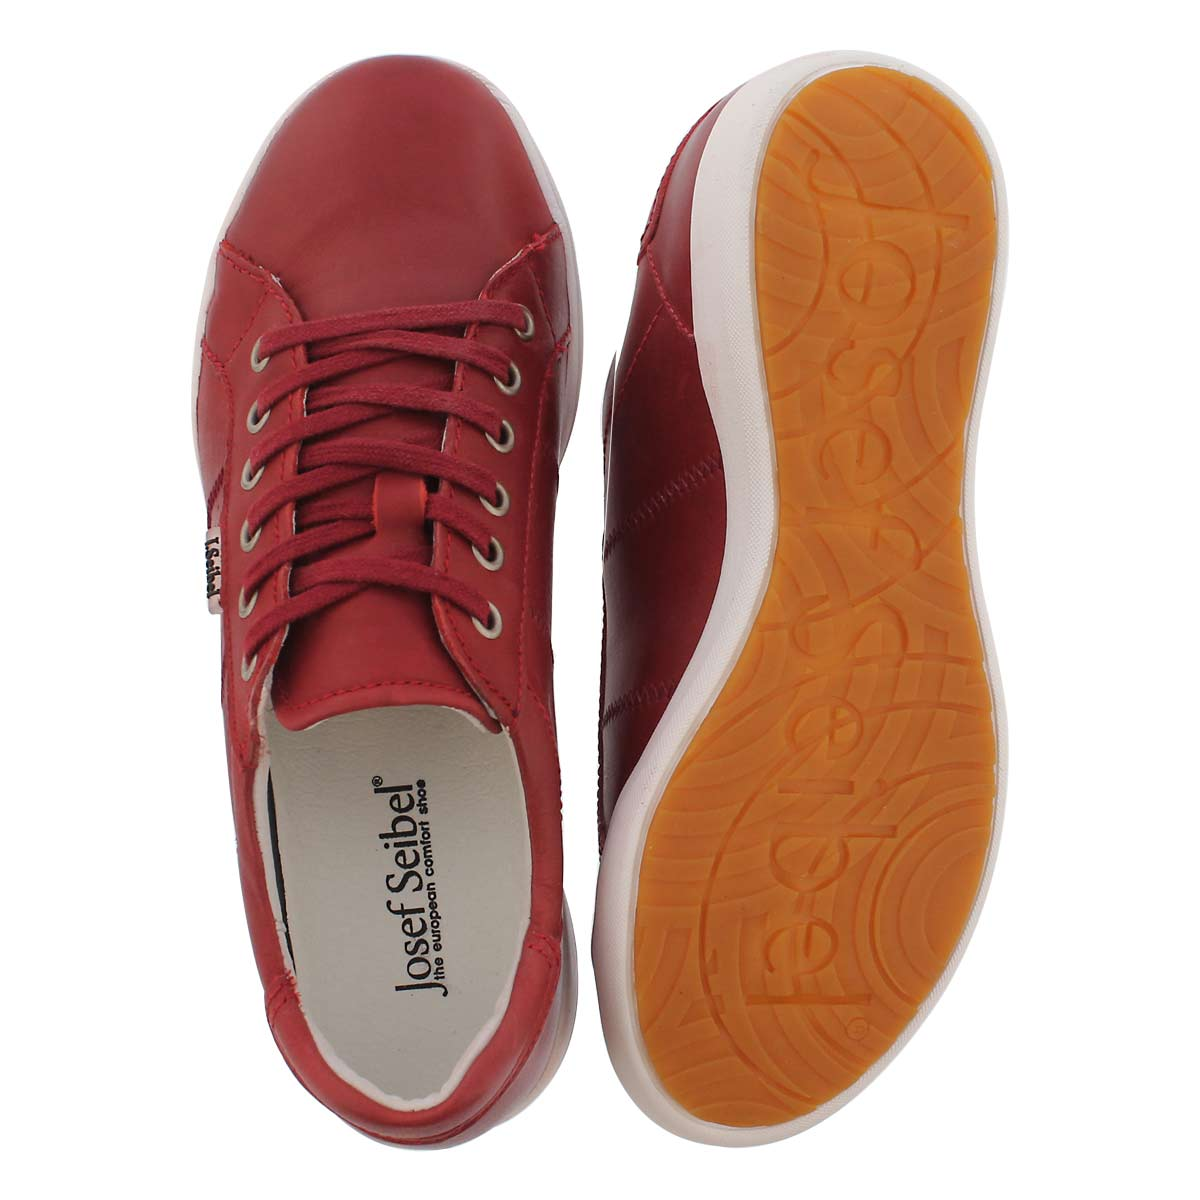 Lds Sina 41 rot lace up casual snkr